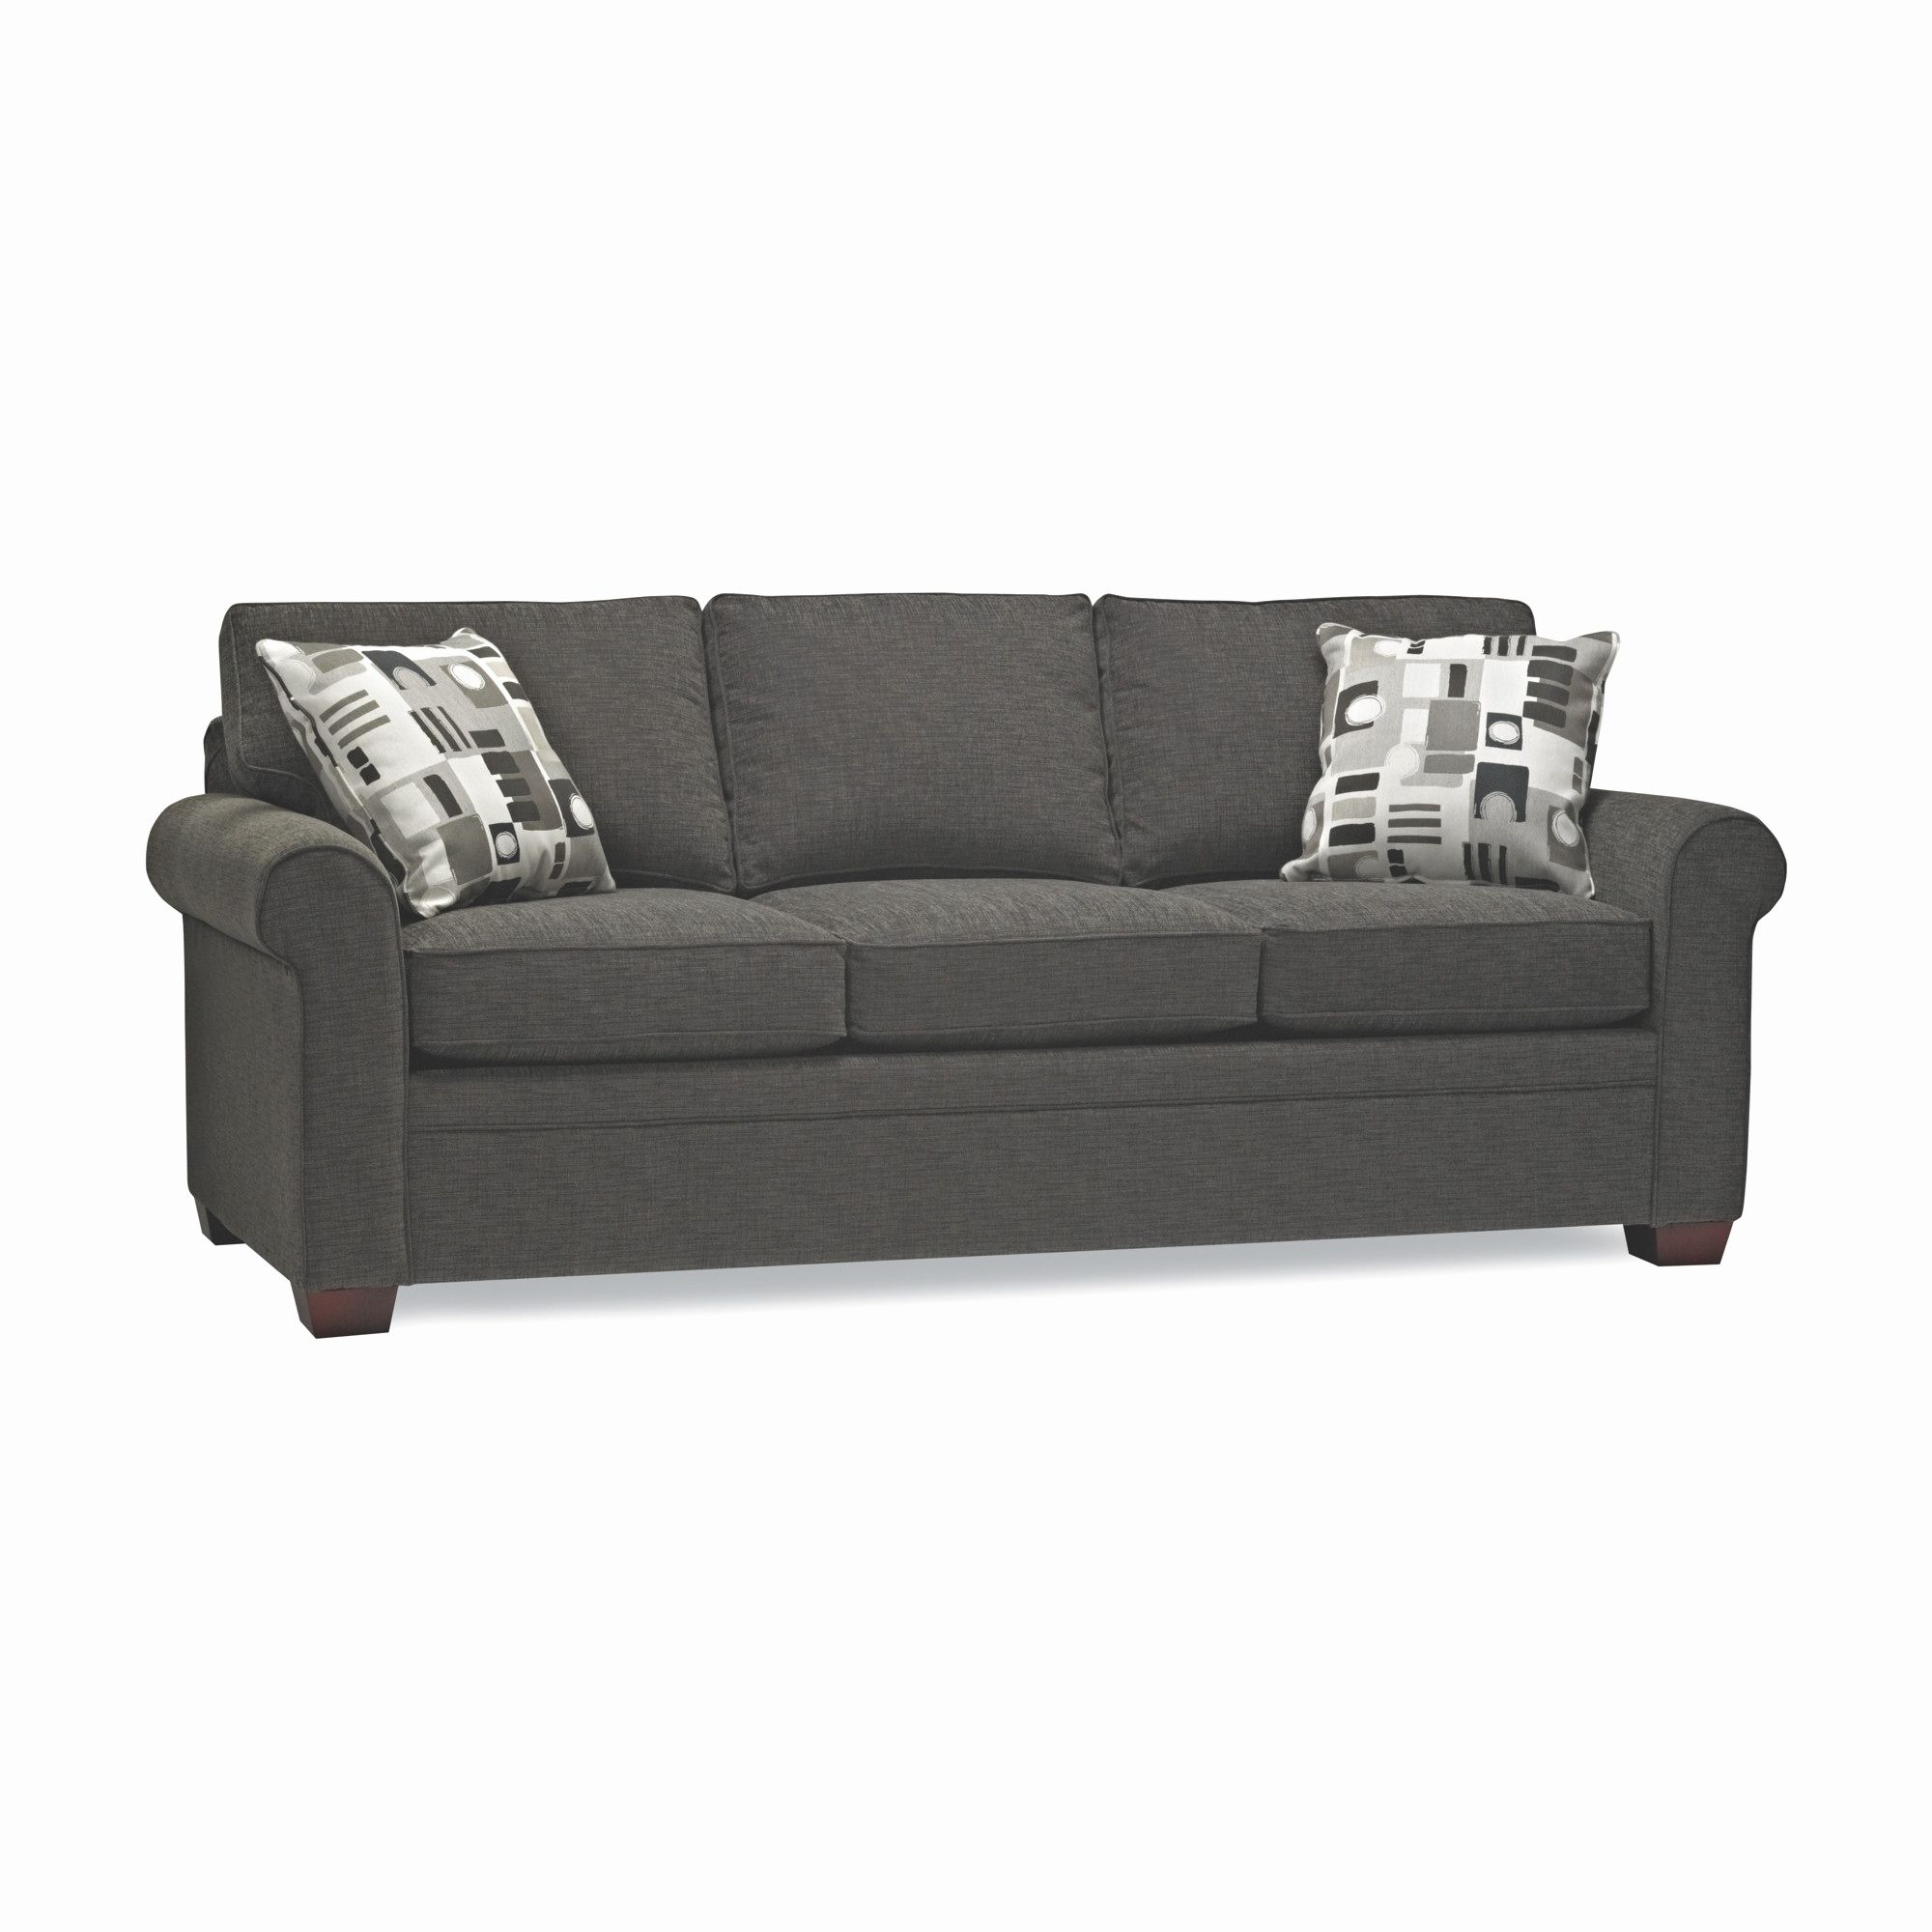 bed with futons beds microfiber back coaster and sofa color contemporary split shop products